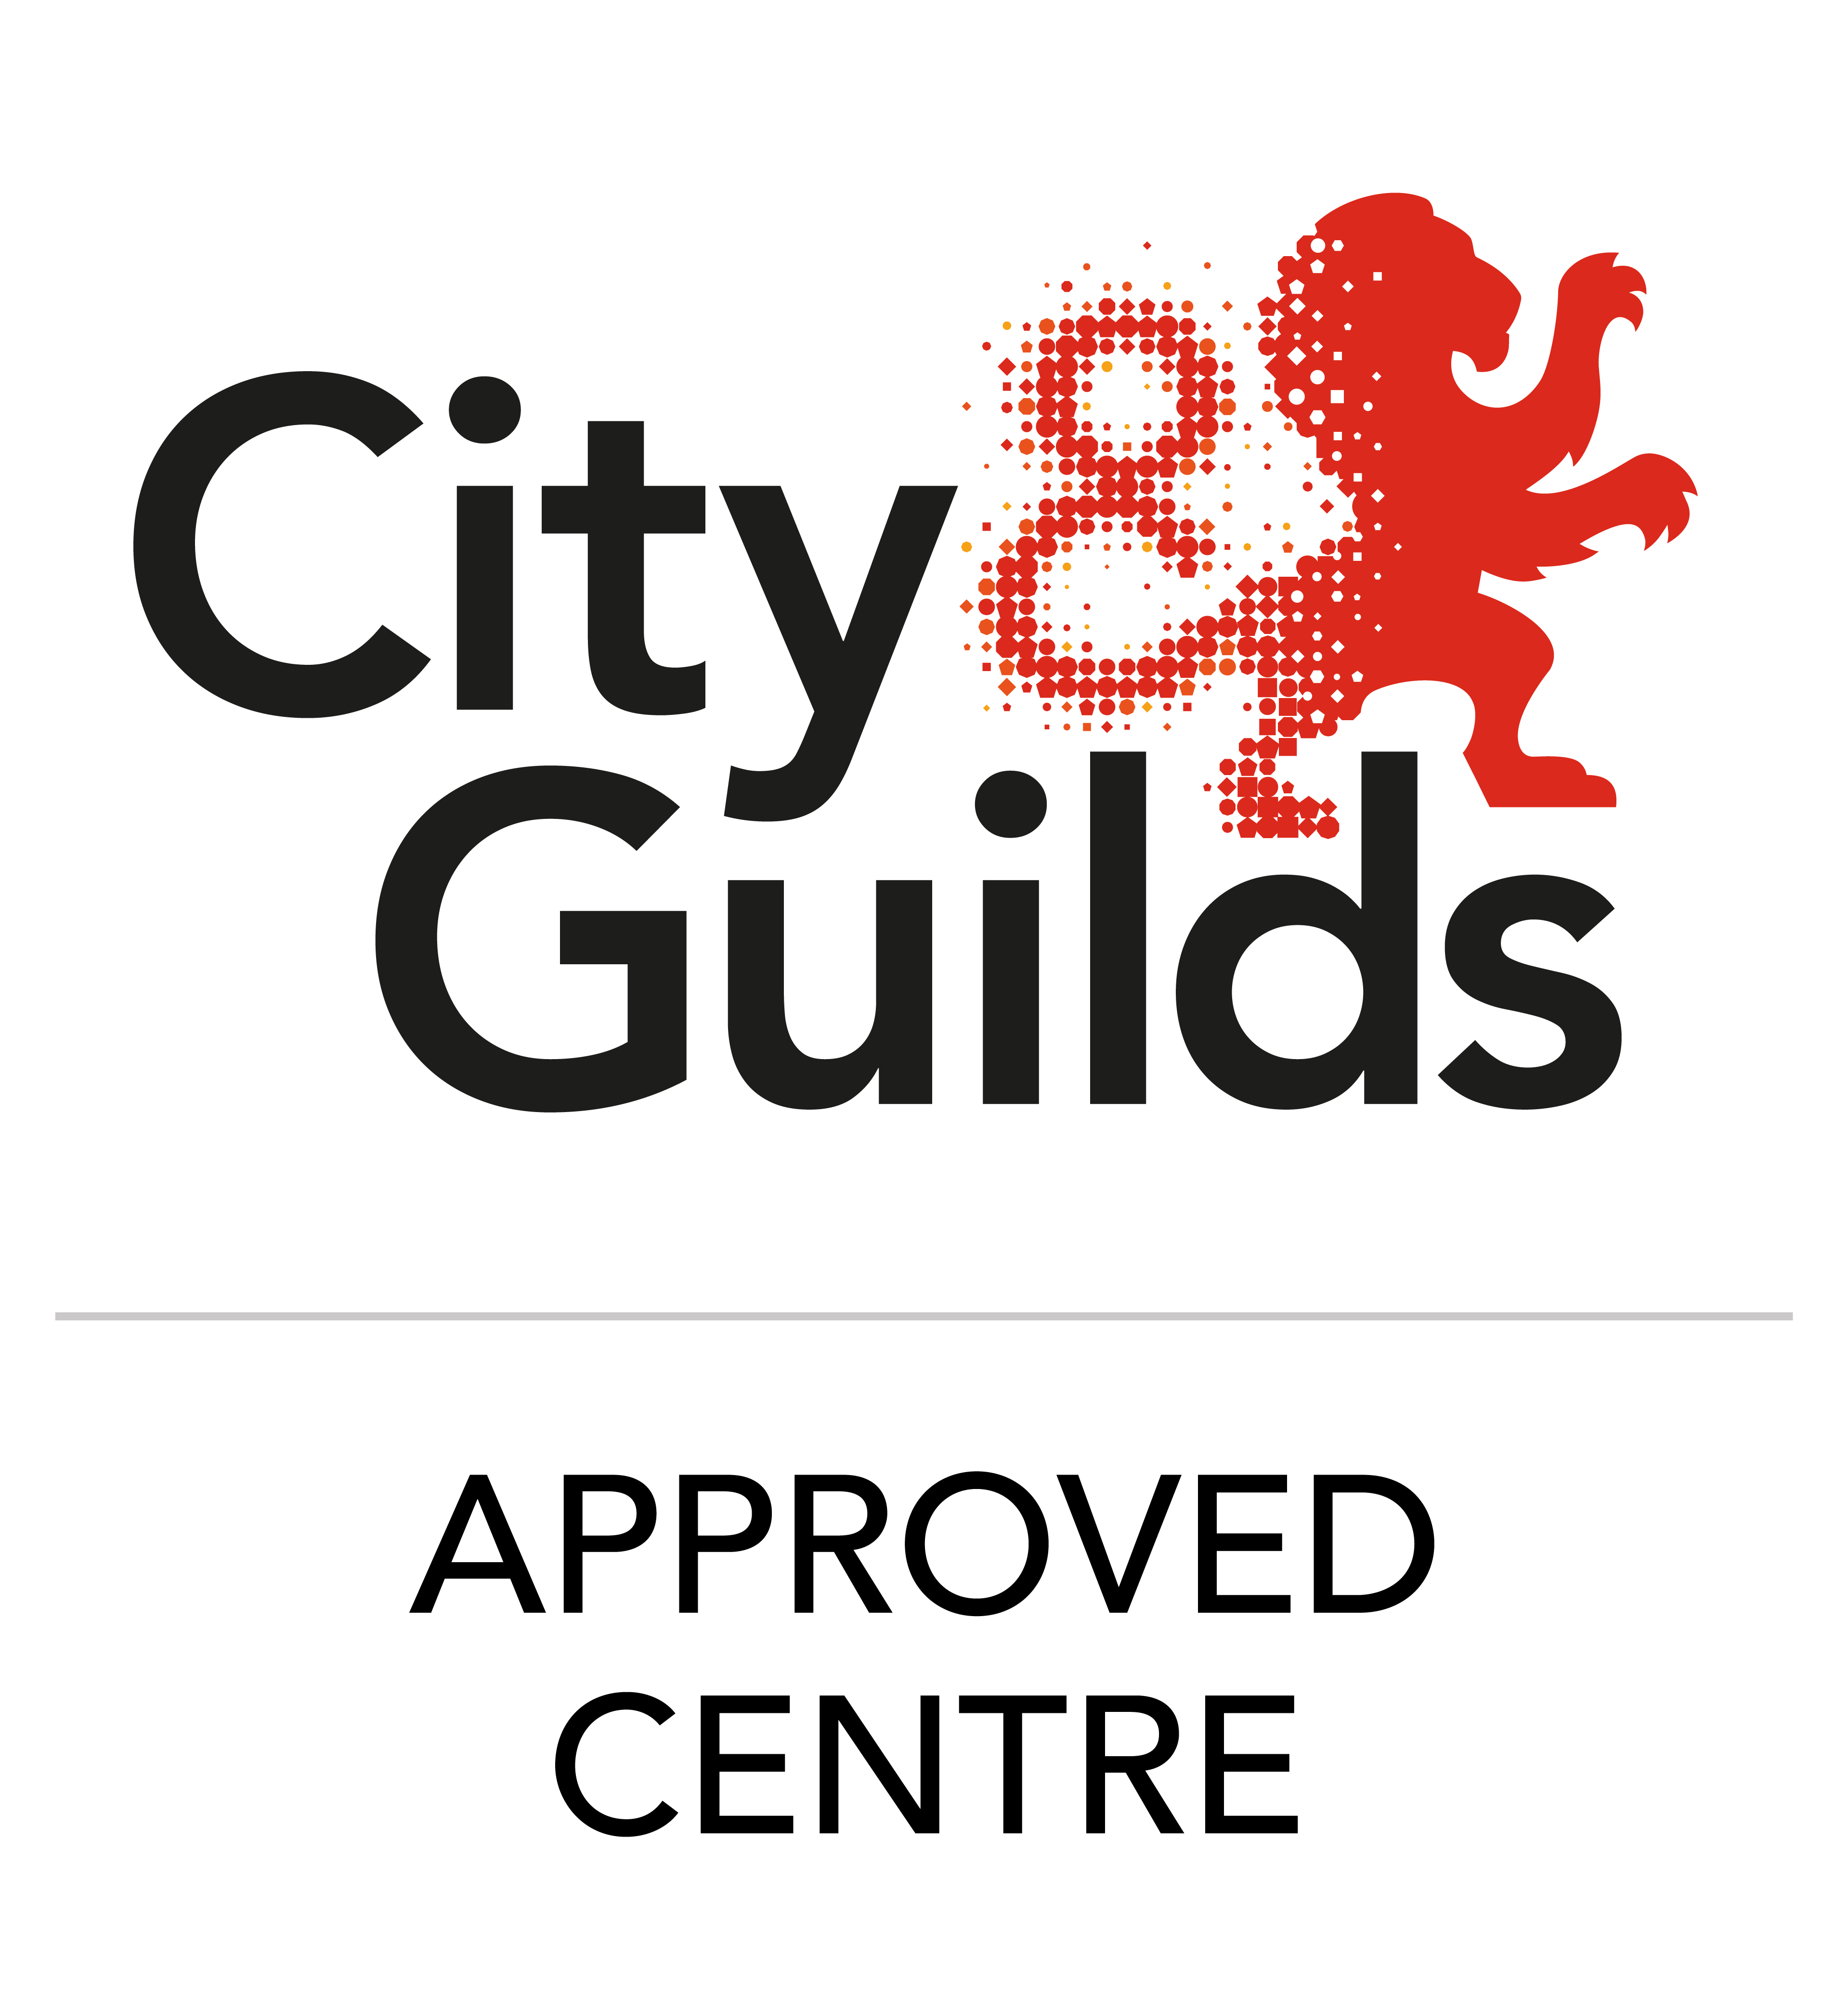 Control 2K is a City and Guilds Approved Training Centre